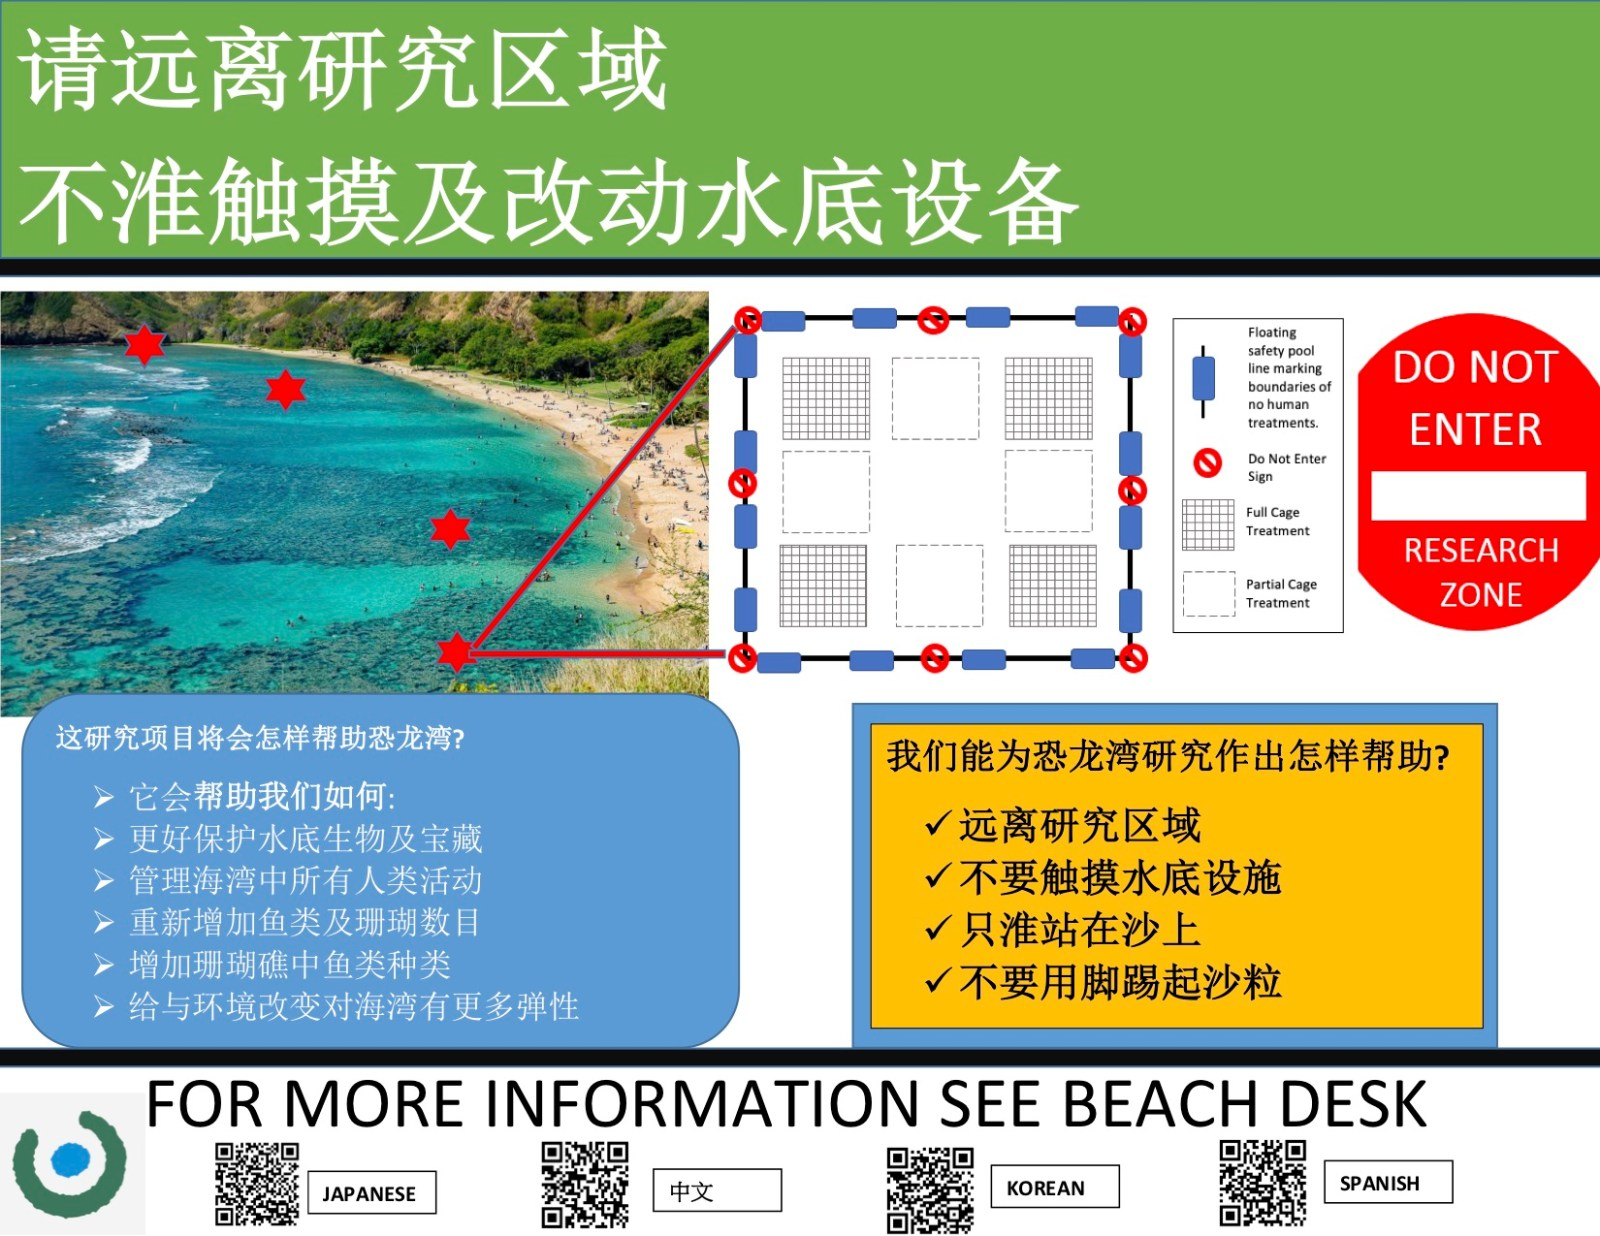 Hbay sign simplified chinese.jpg